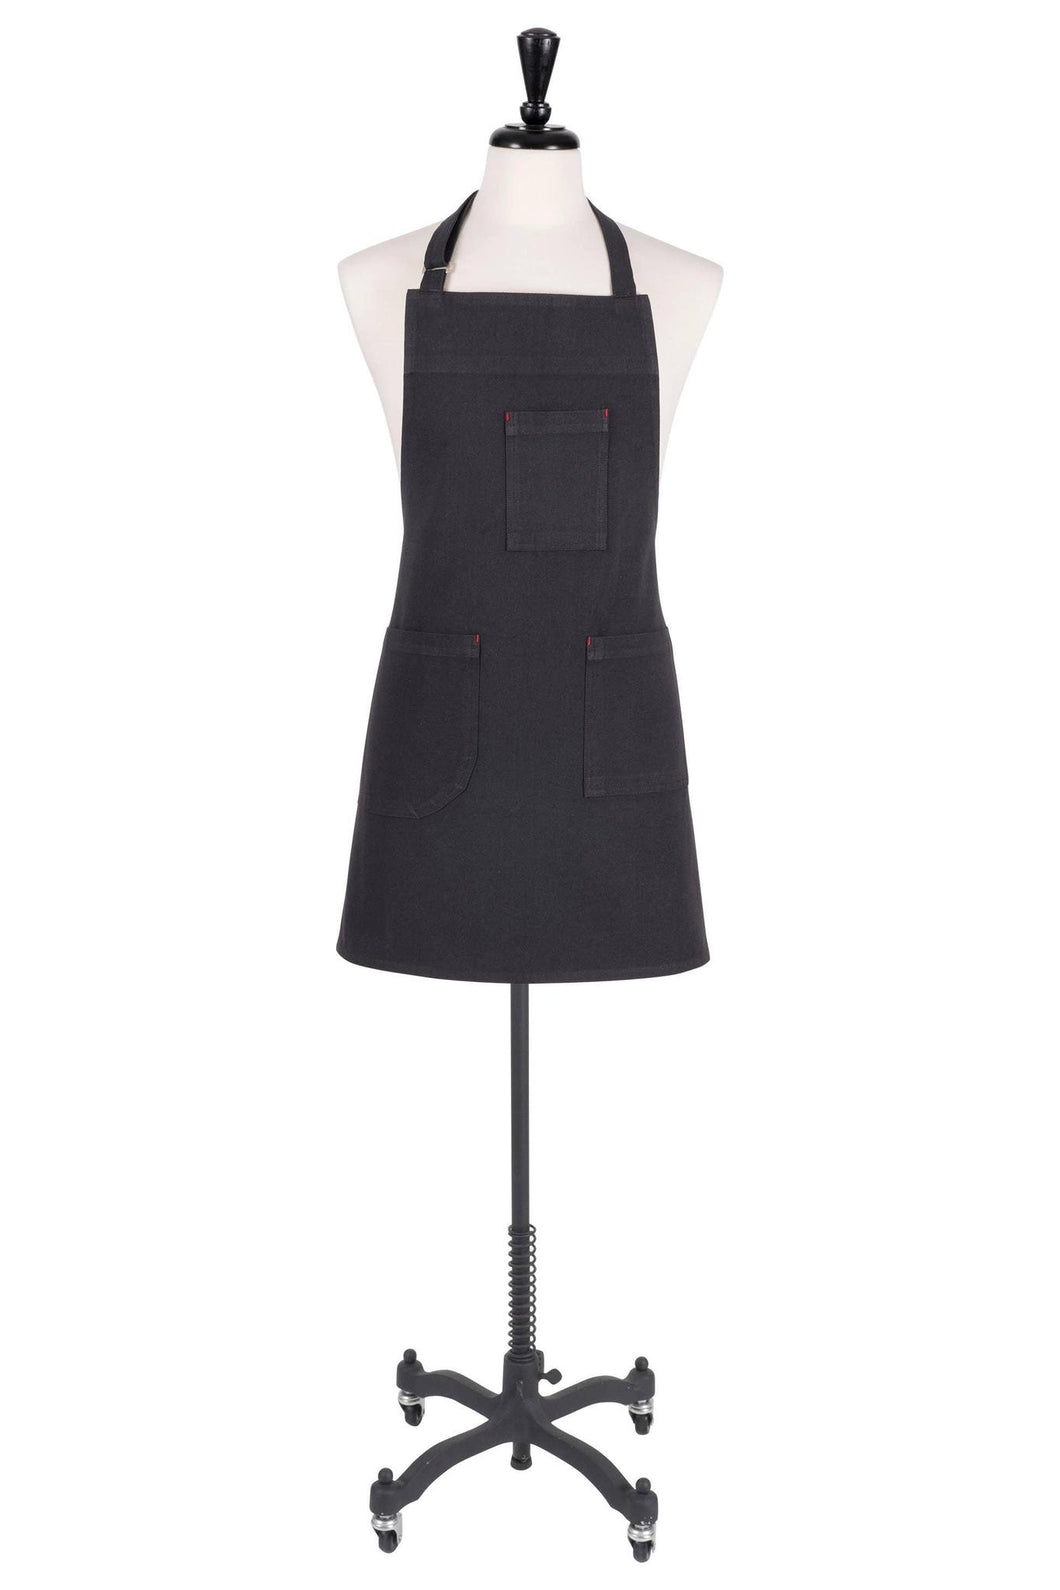 Tailor - Black Apron